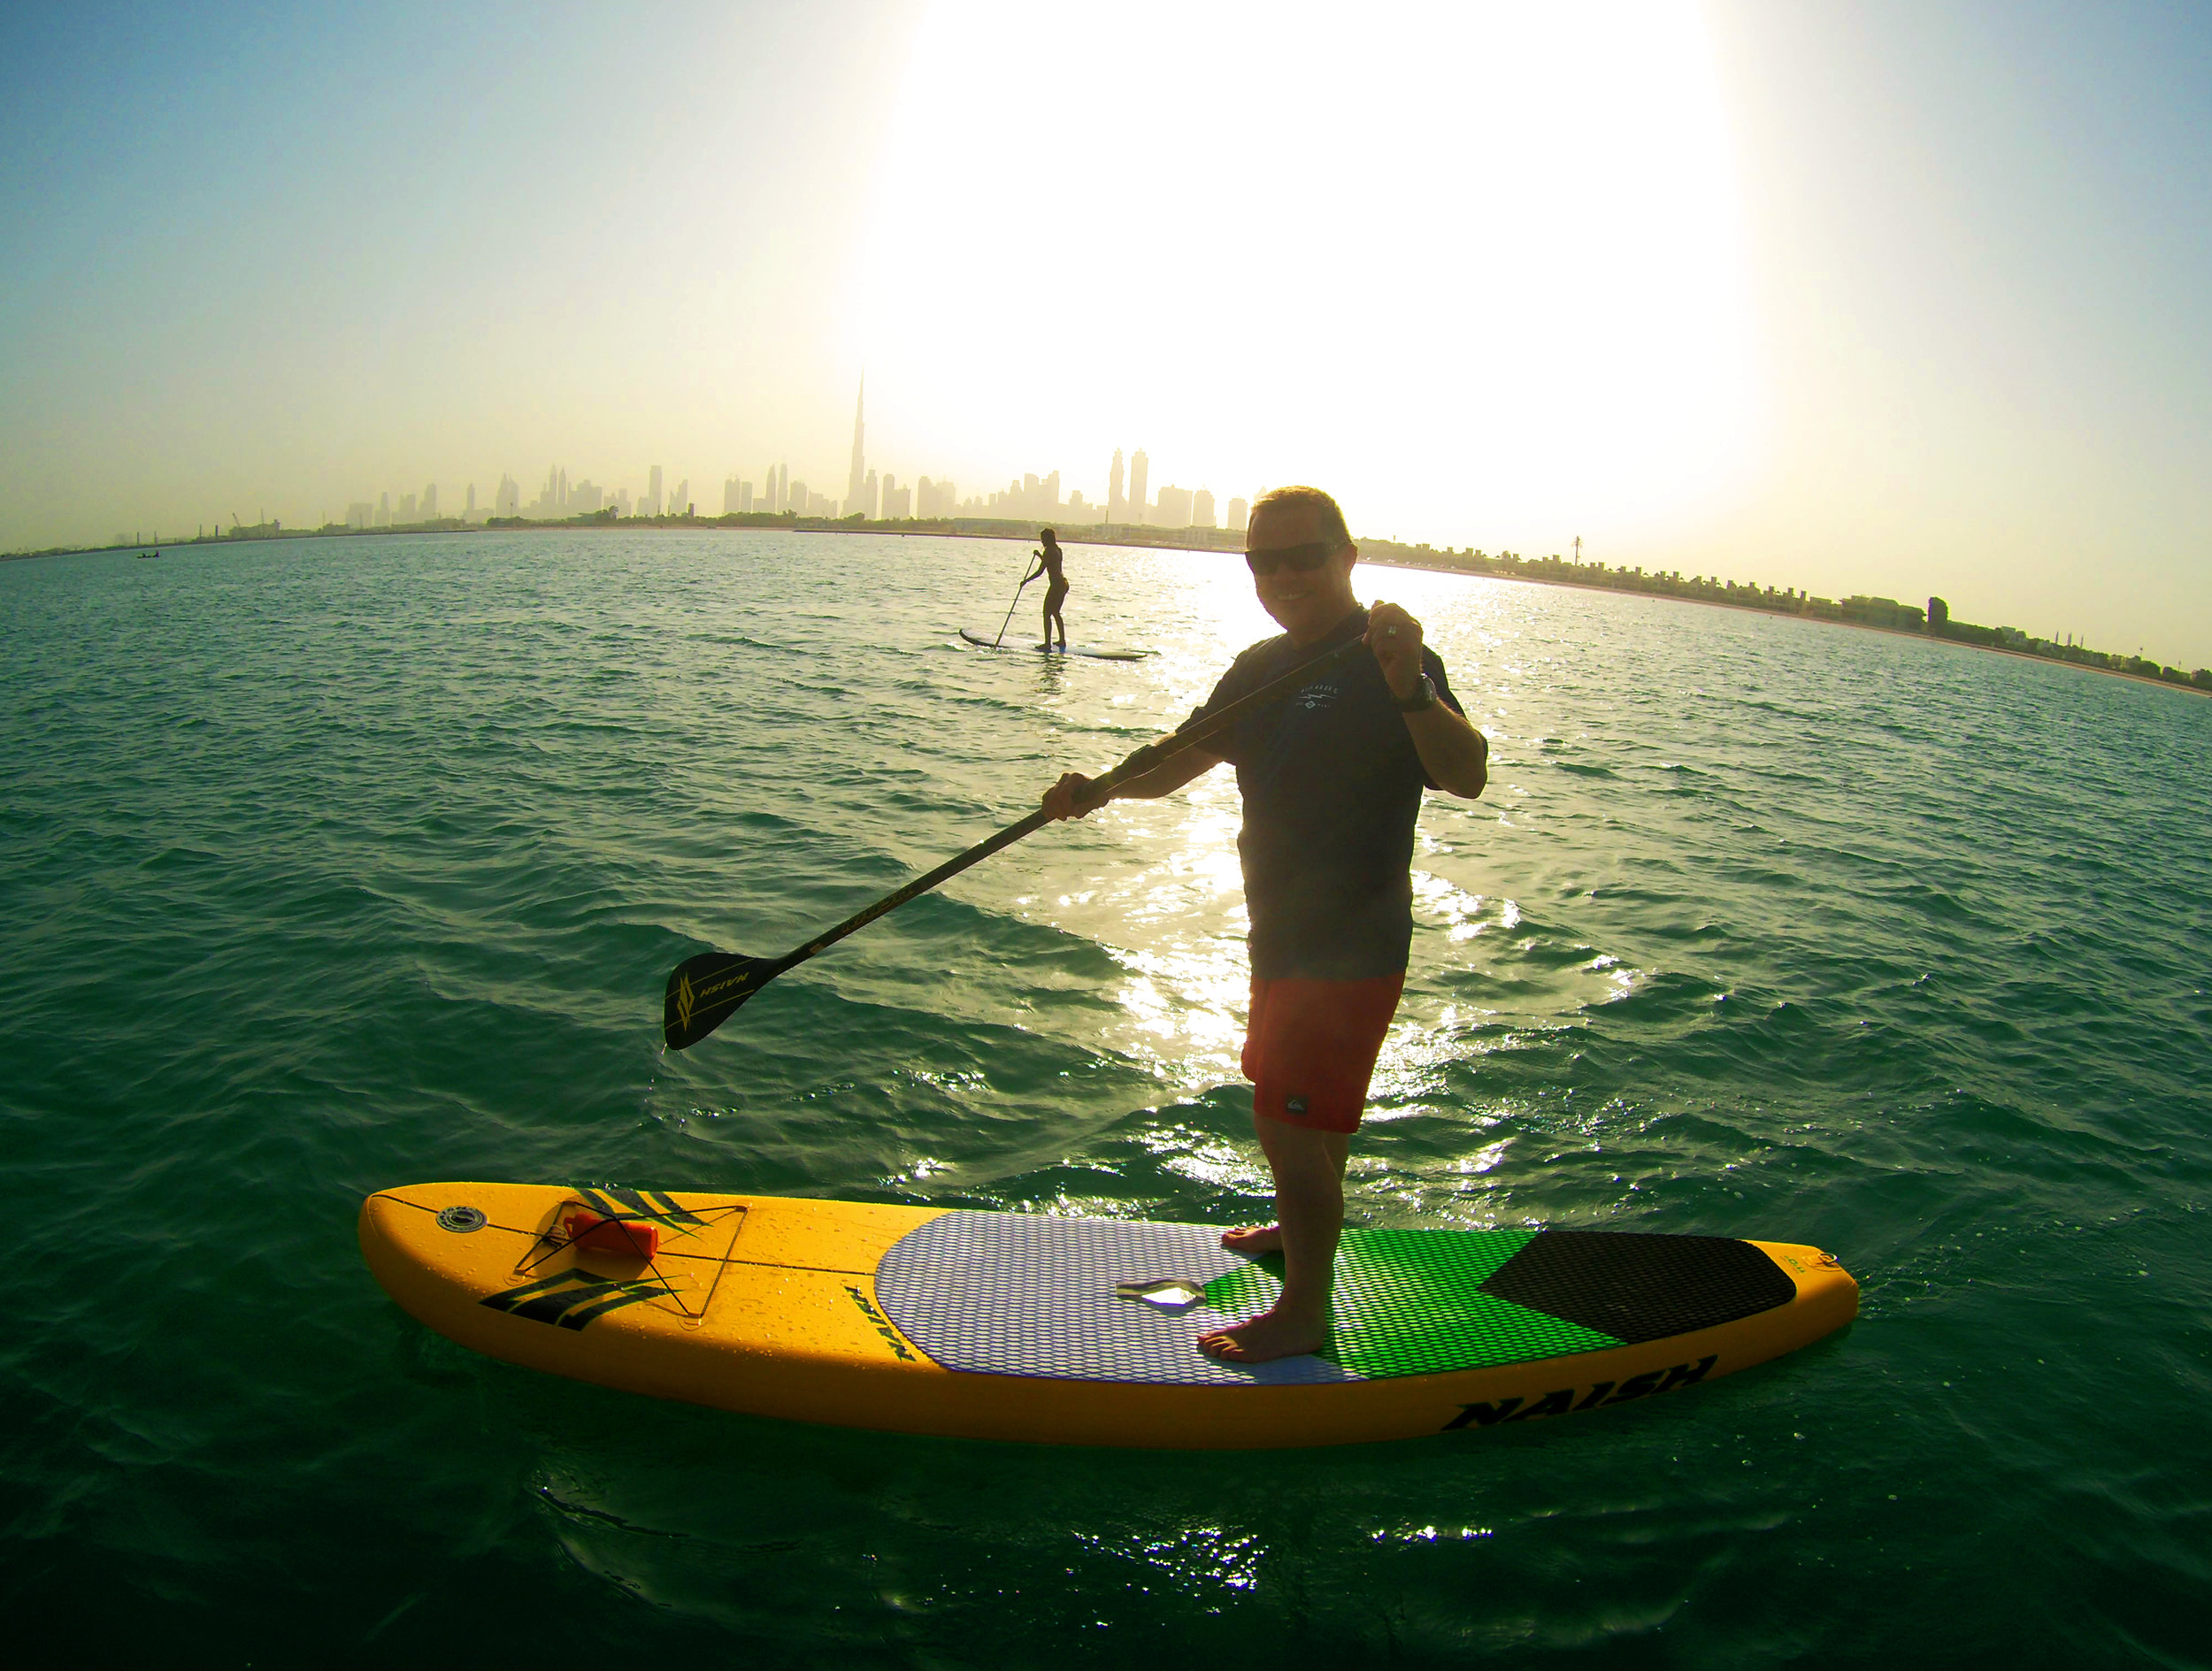 Toby on the SUP with girl in background.jpg